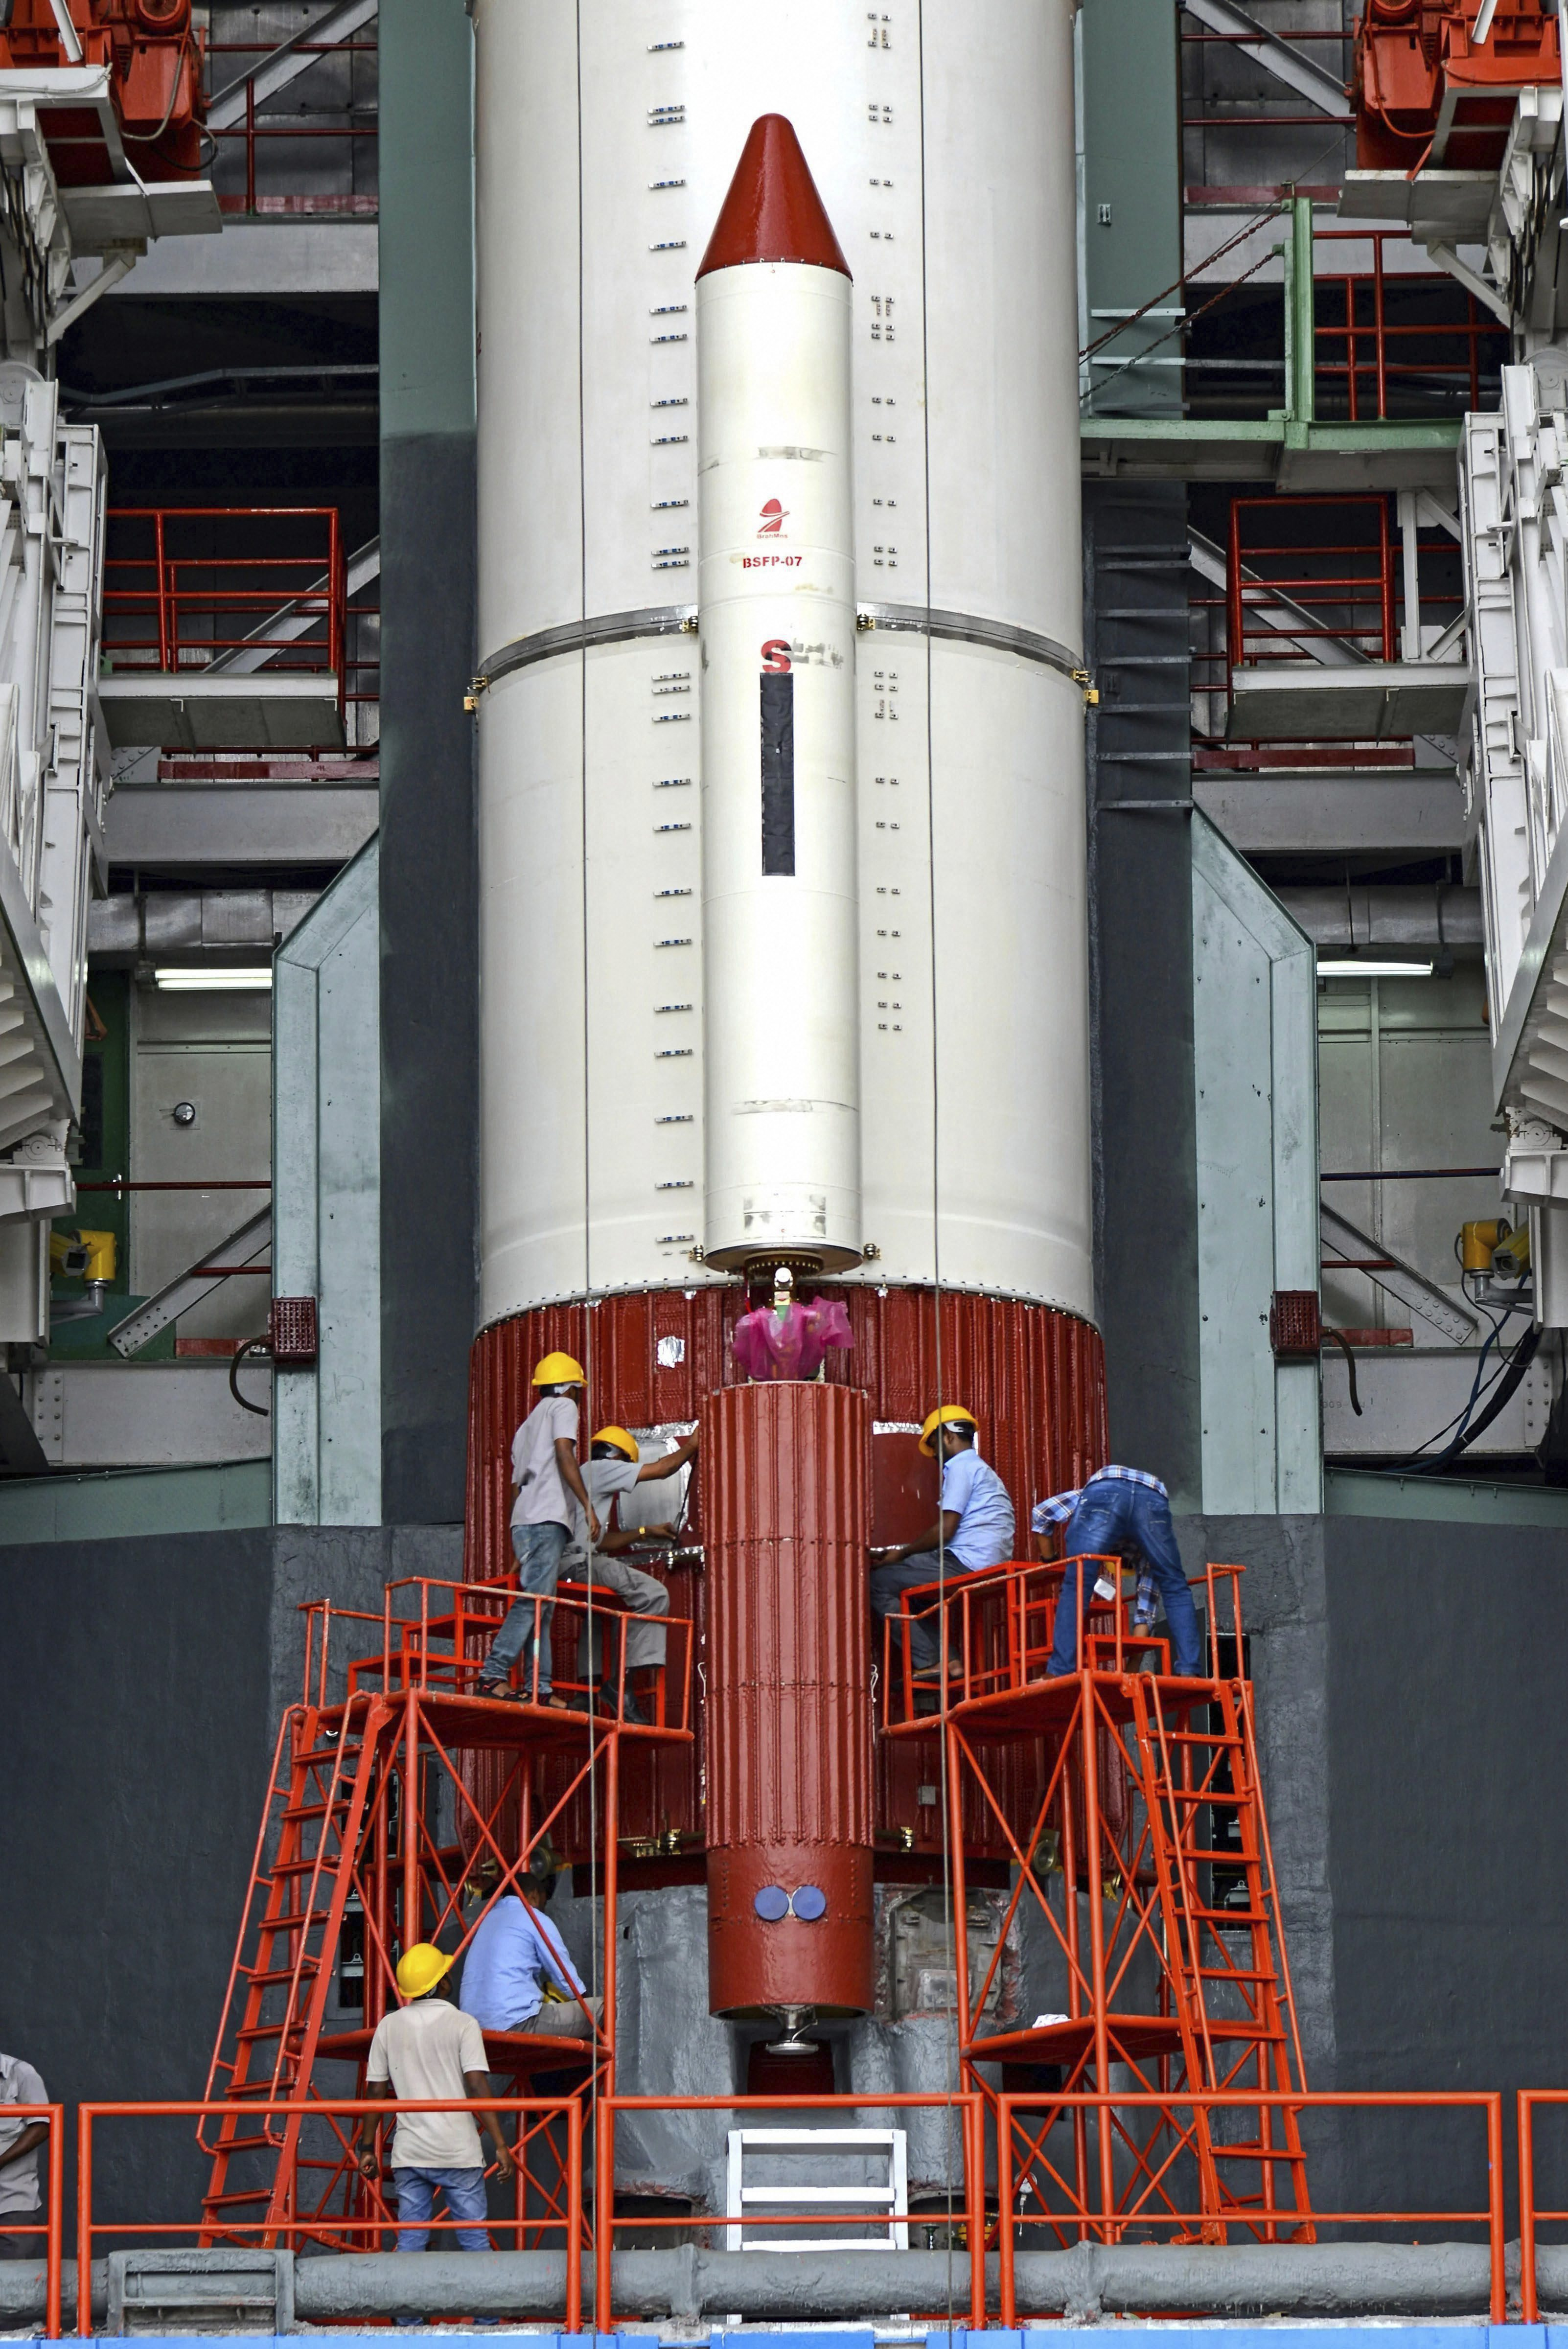 Work is in progress on the PSLV-C42 vehicle as preparations are underway for the first-ever commercial launch by ISRO, of two UK satellites Novasar and S1-4, from the spaceport of Sriharikota near Chennai - PTI